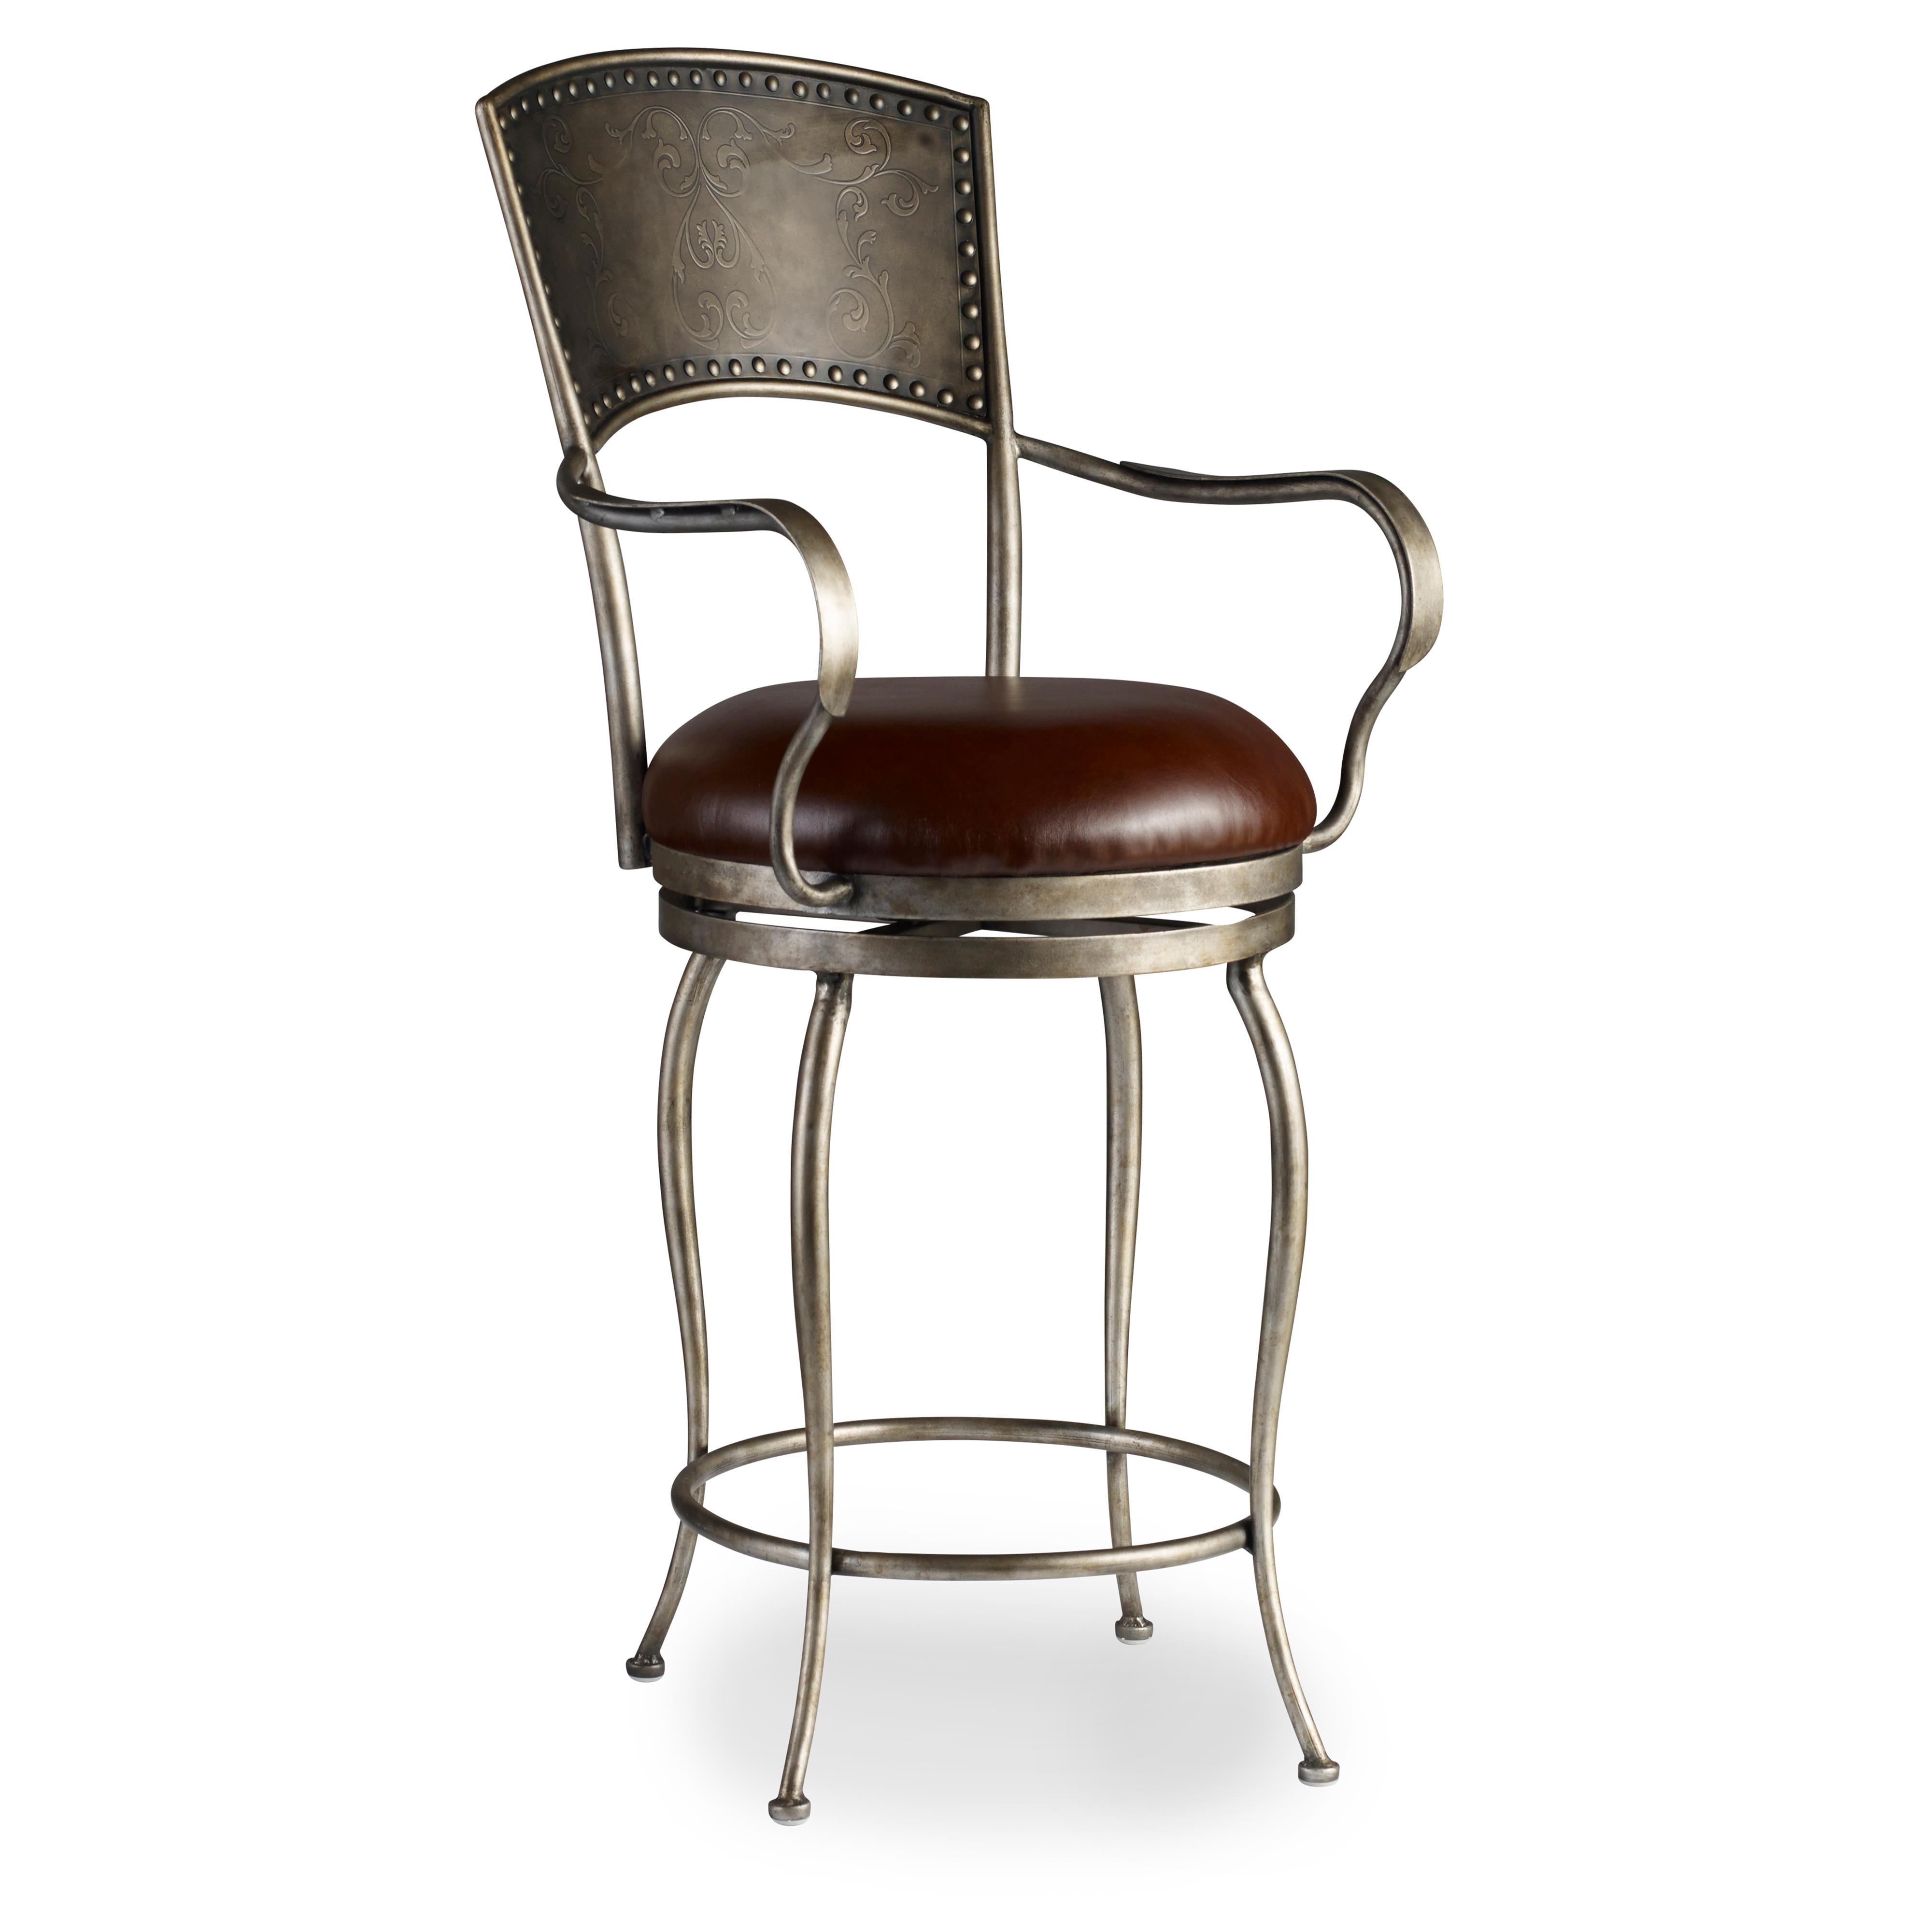 Hooker Furniture Stools Medium Metal Barstool with Leather Seat - Item Number: 300-20024